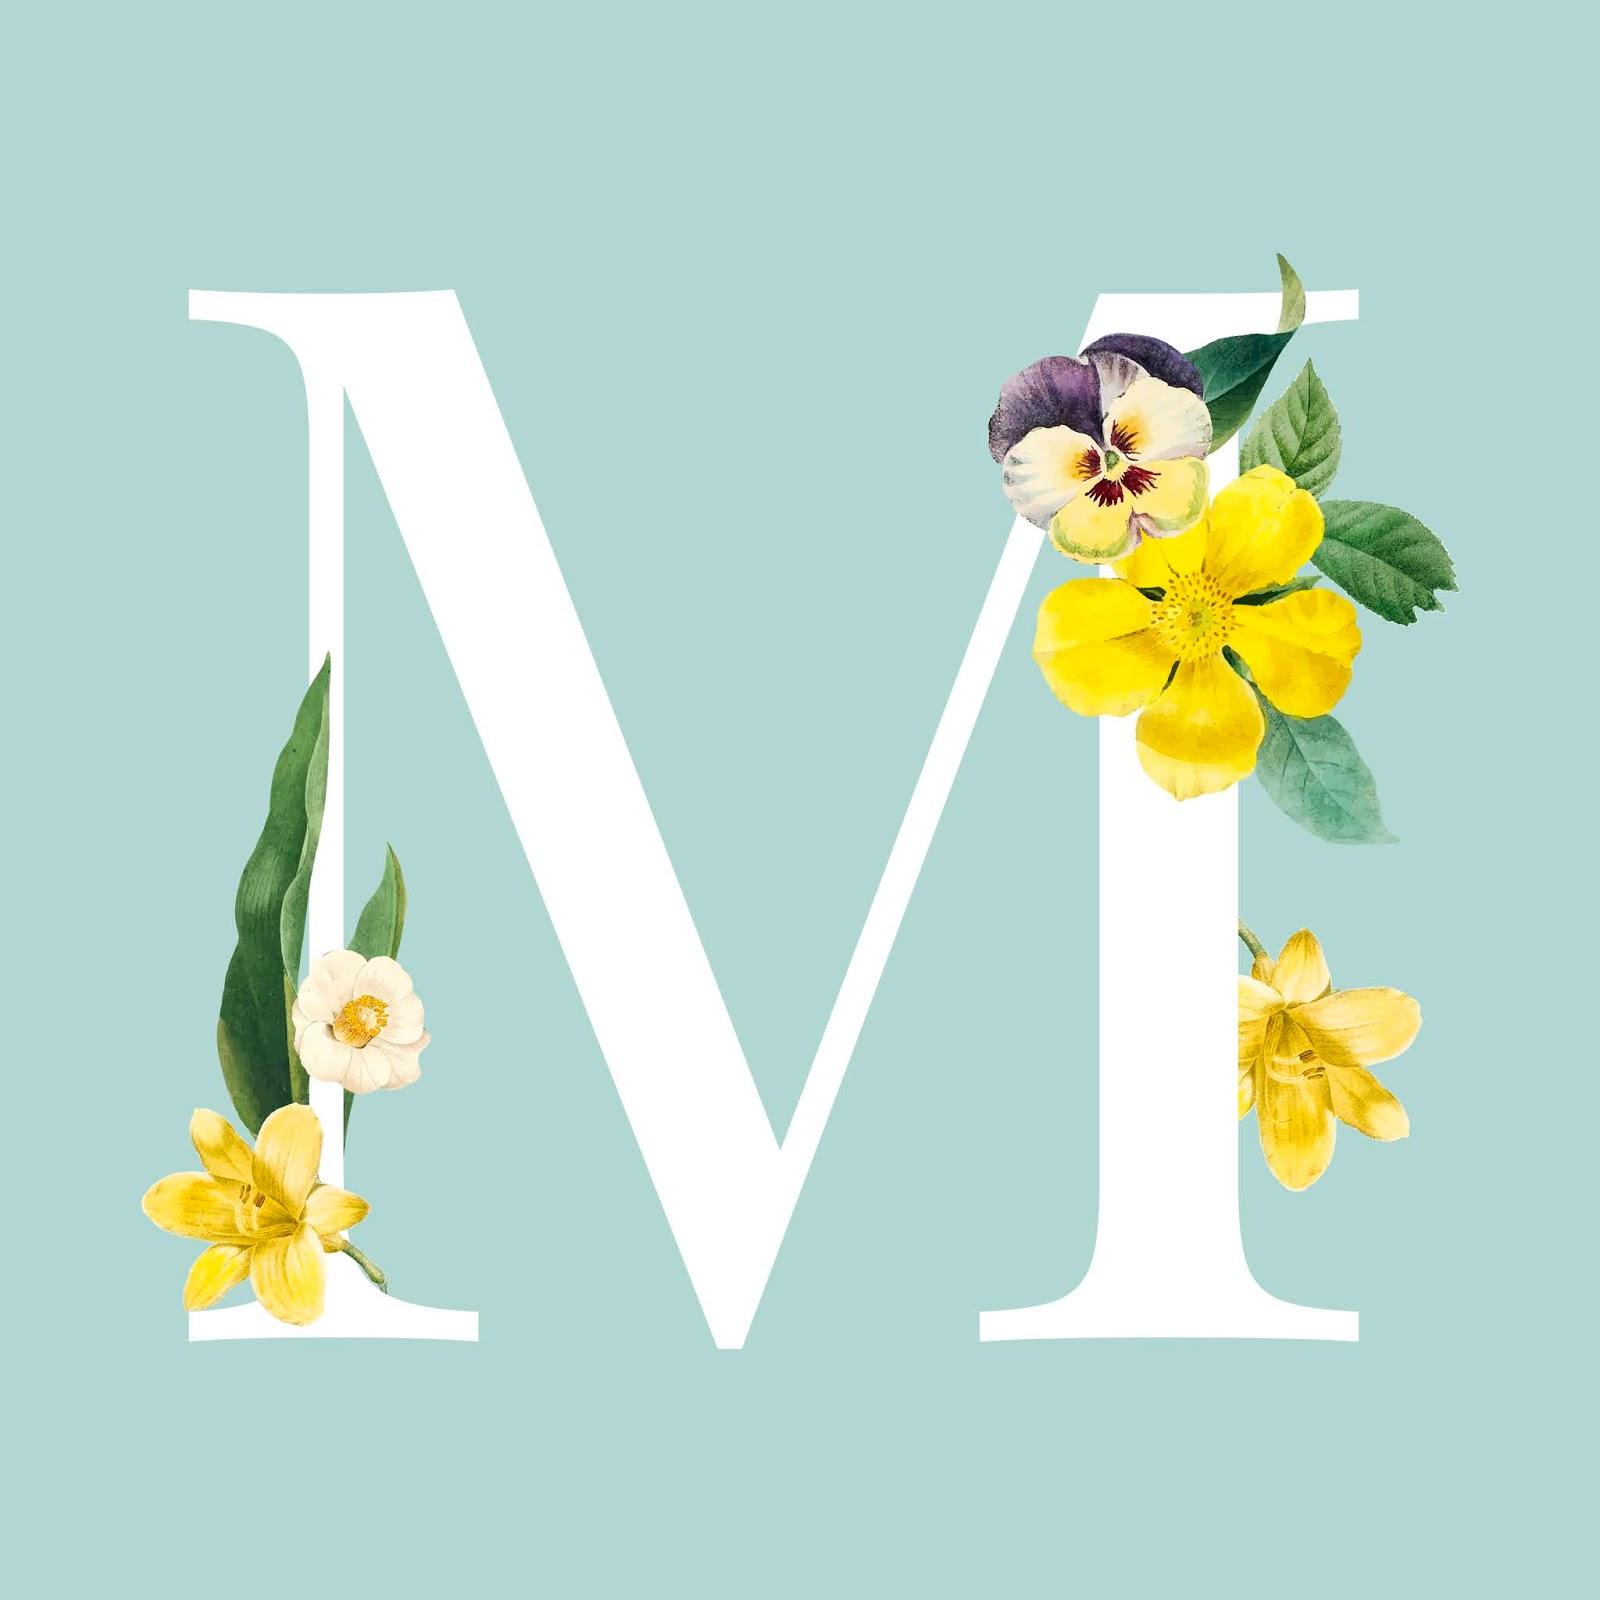 Floral Capital Letter M Alphabet Vector Free Download Vector CDR, AI, EPS and PNG Formats